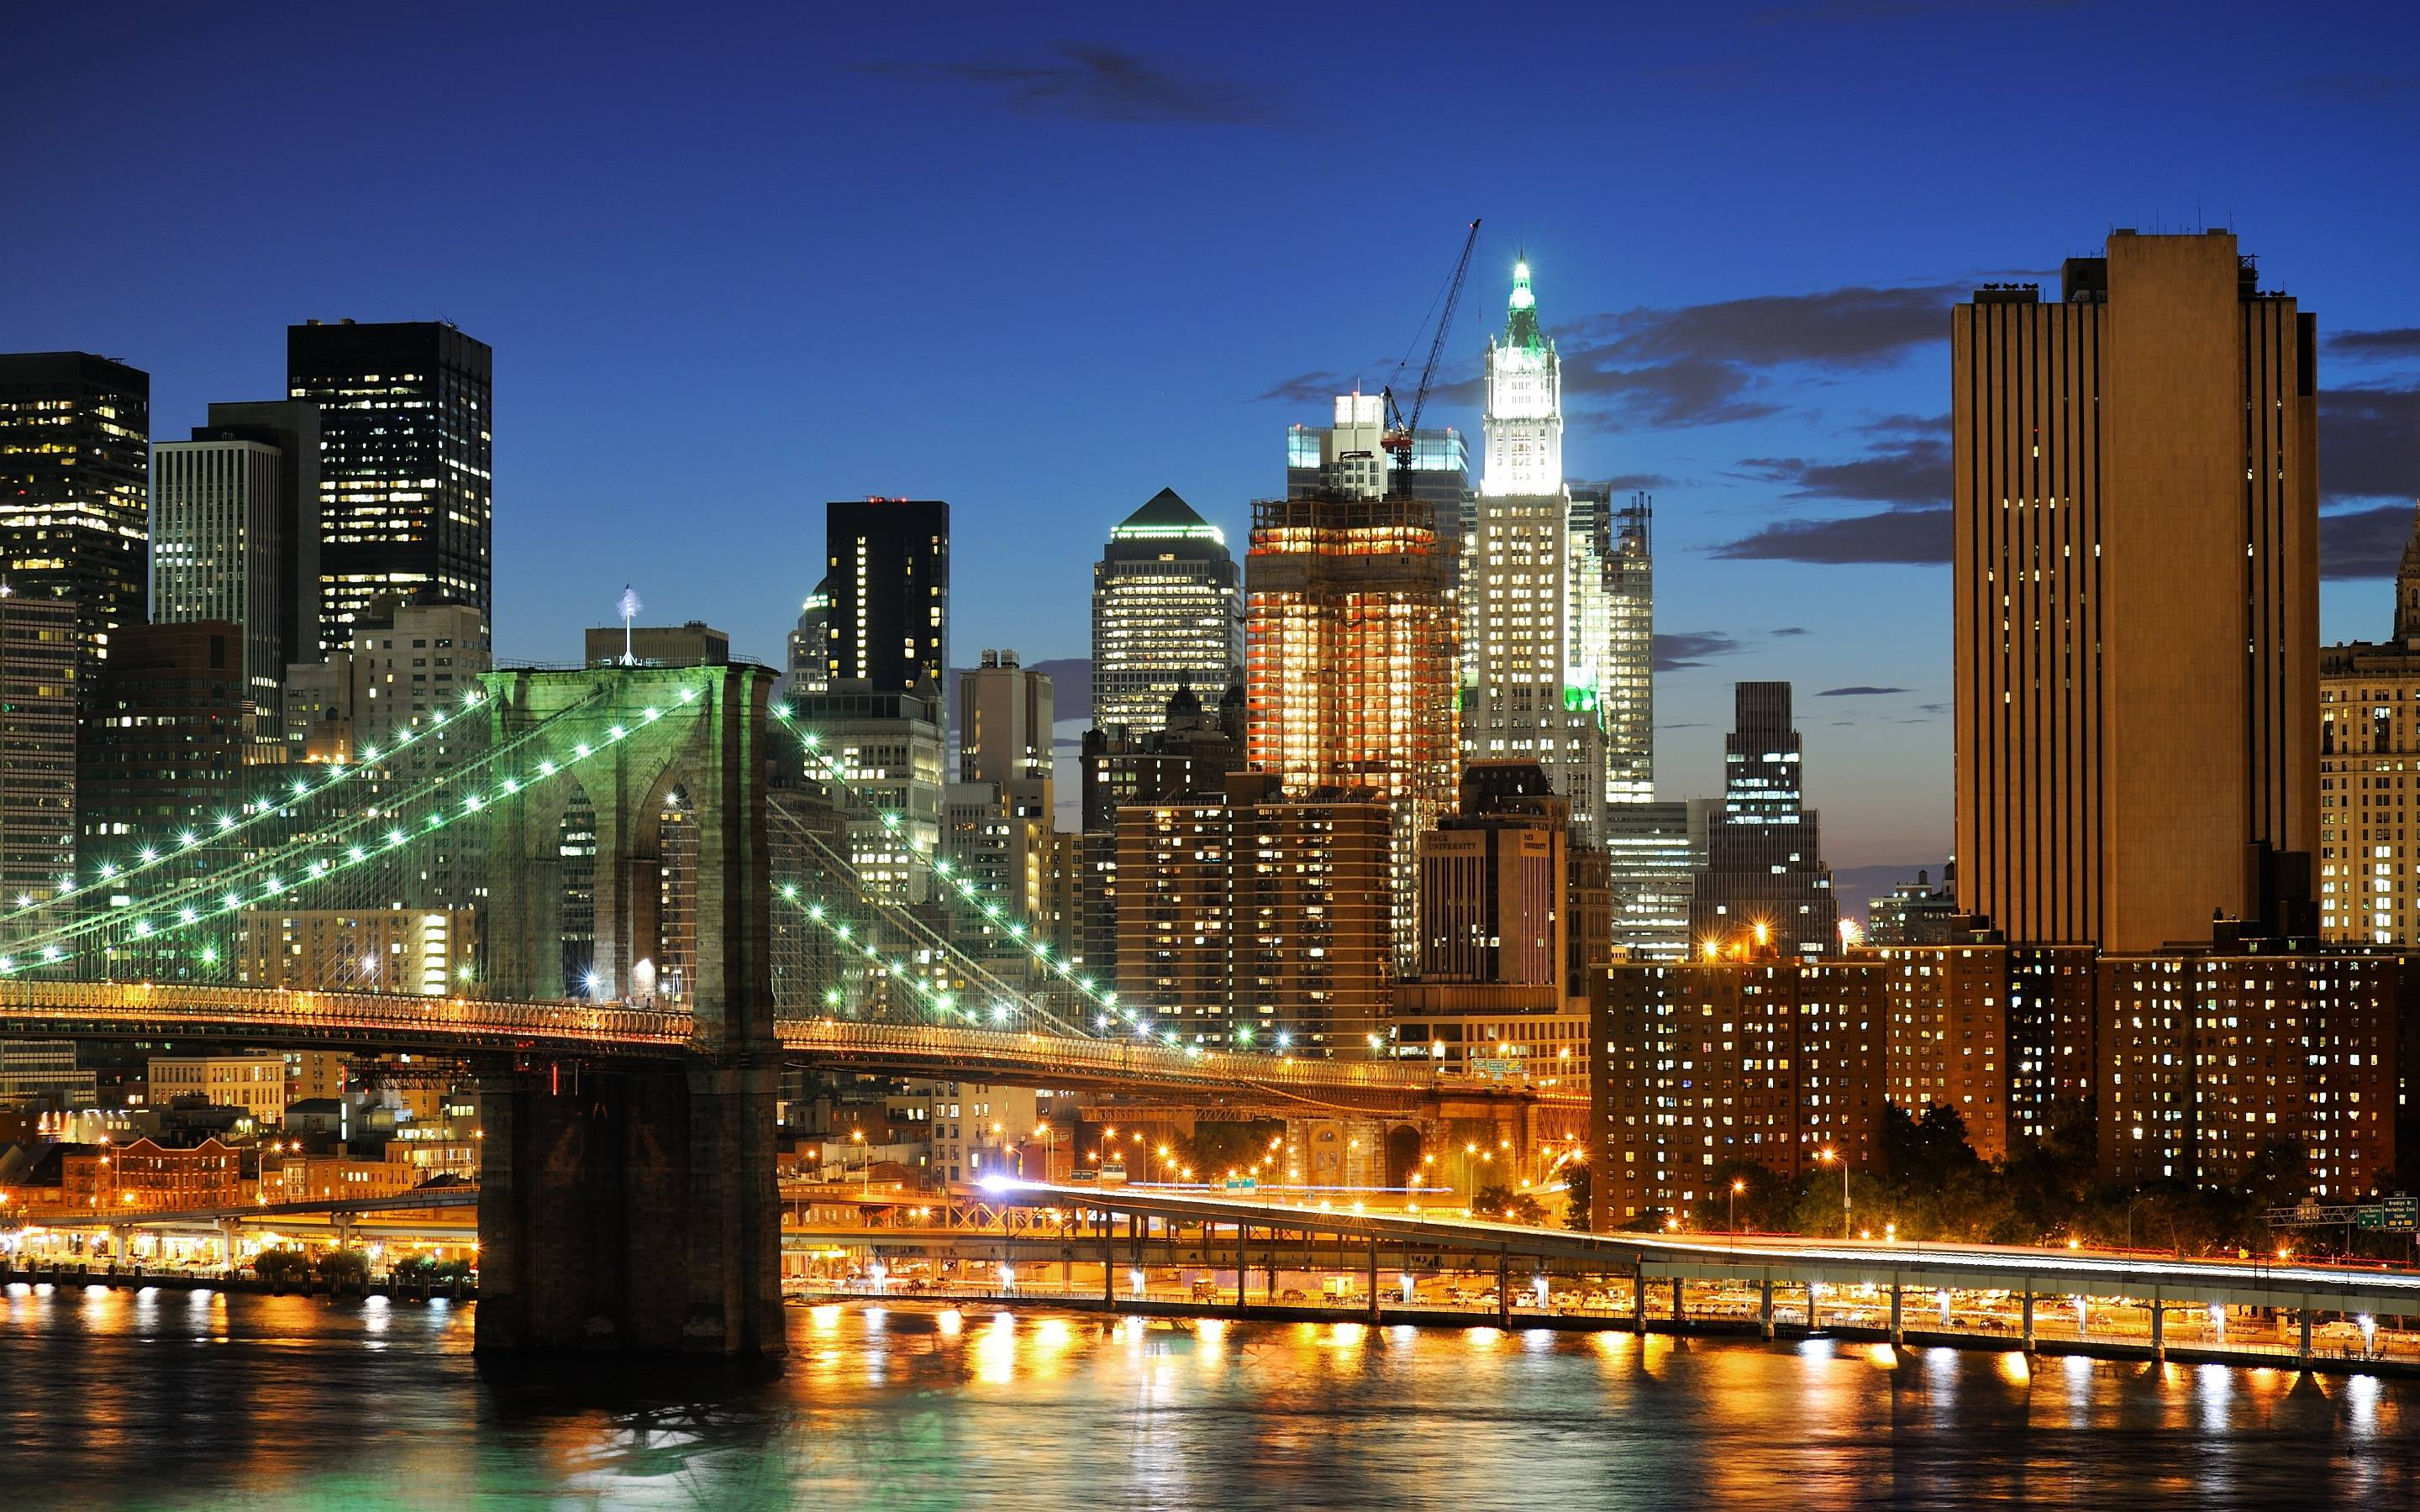 Related Pictures New York City New York City Hd Wallpapers Car